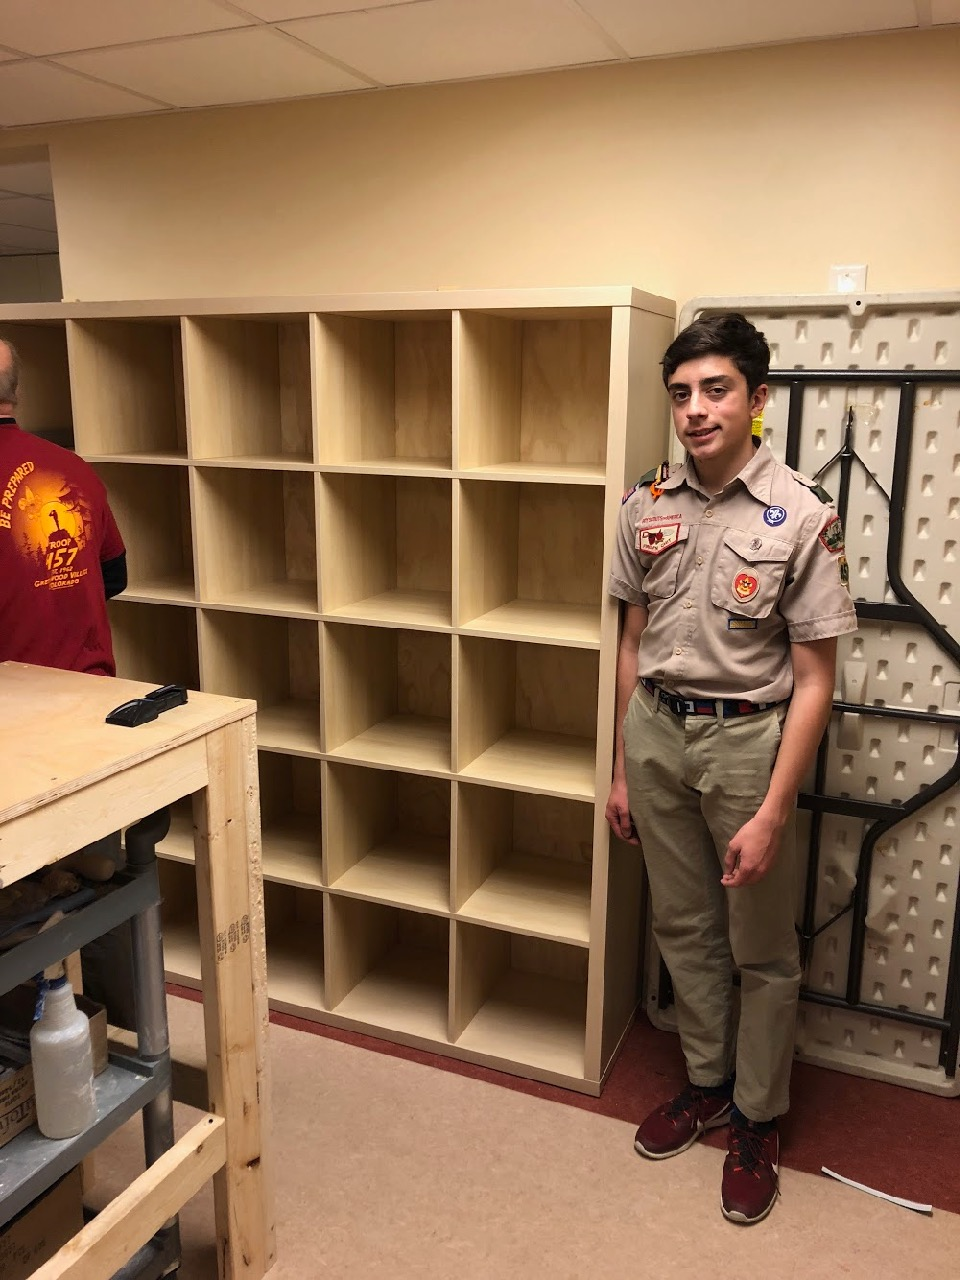 Alex LaBarre stands next to the new cubby shelves that he helped assemble for the art room